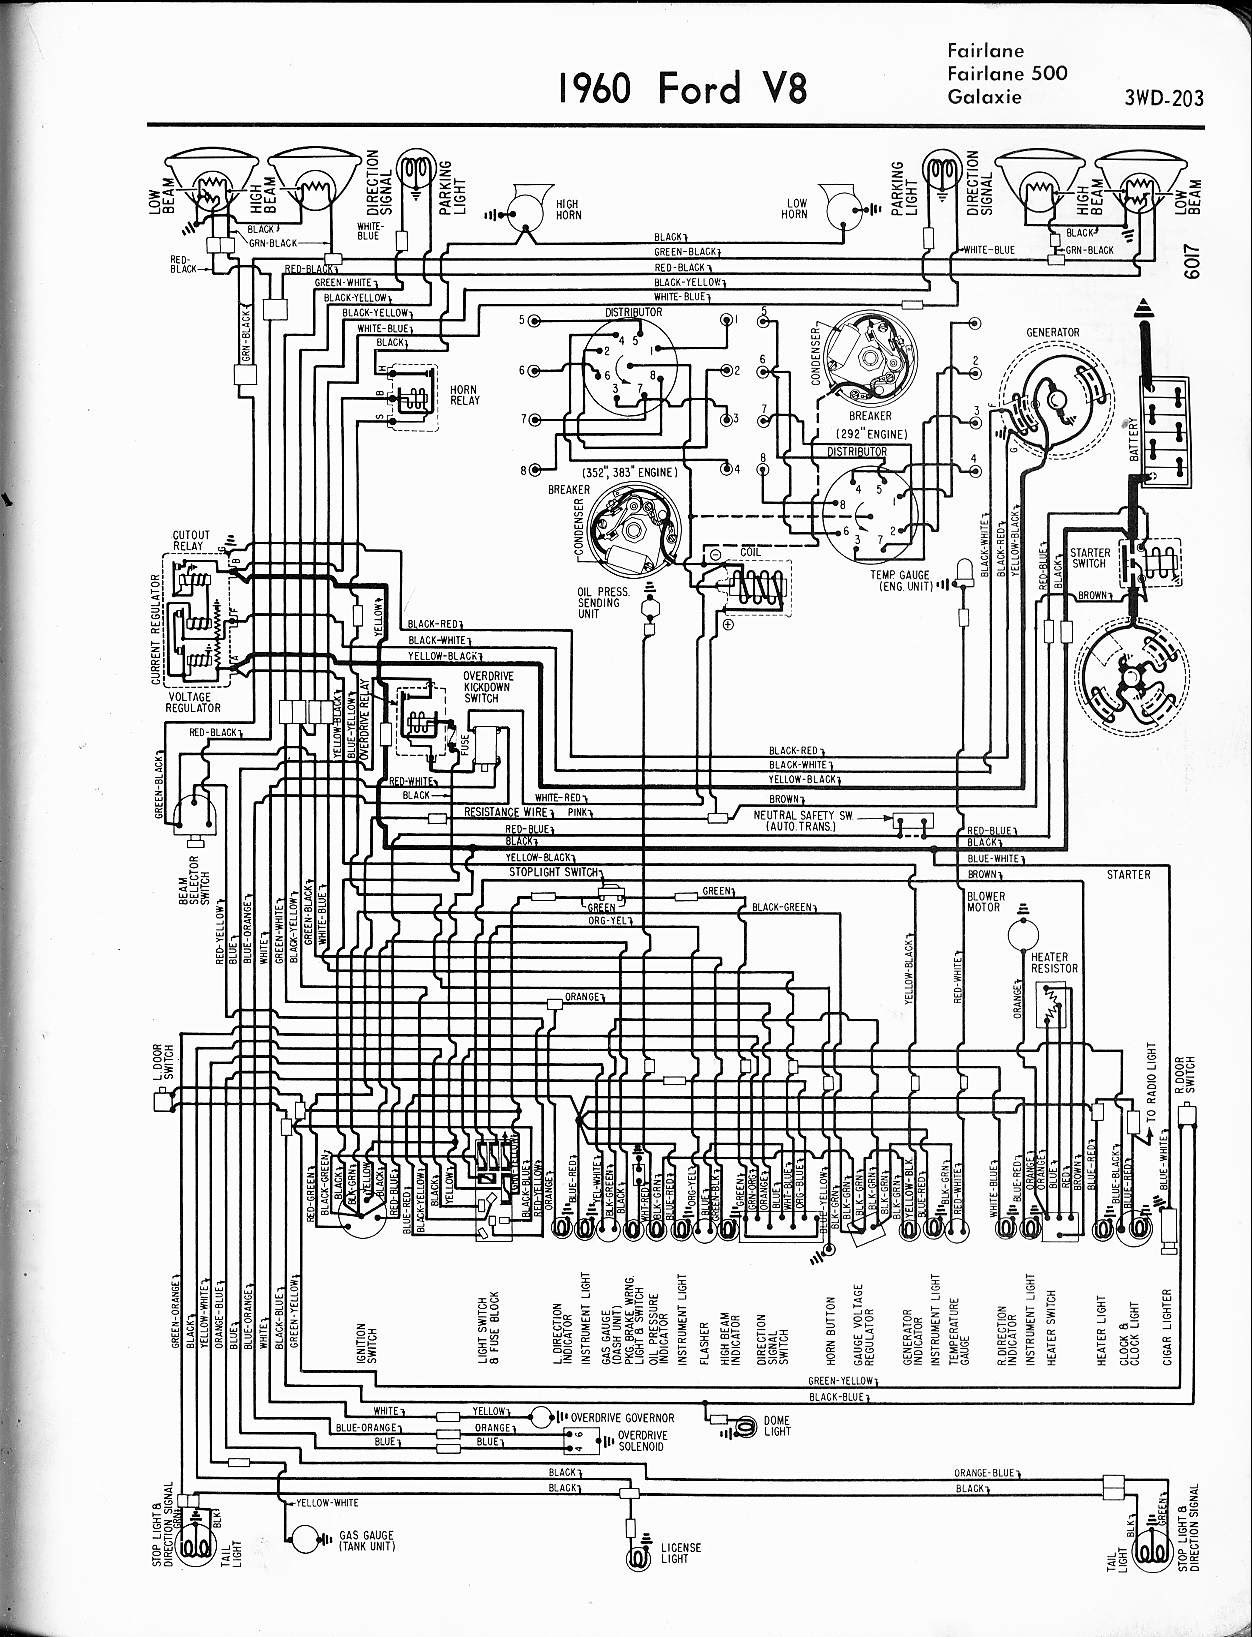 1955 Ford Fairlane Wiring Diagram Wiring Diagram Inspection Inspection Consorziofiuggiturismo It